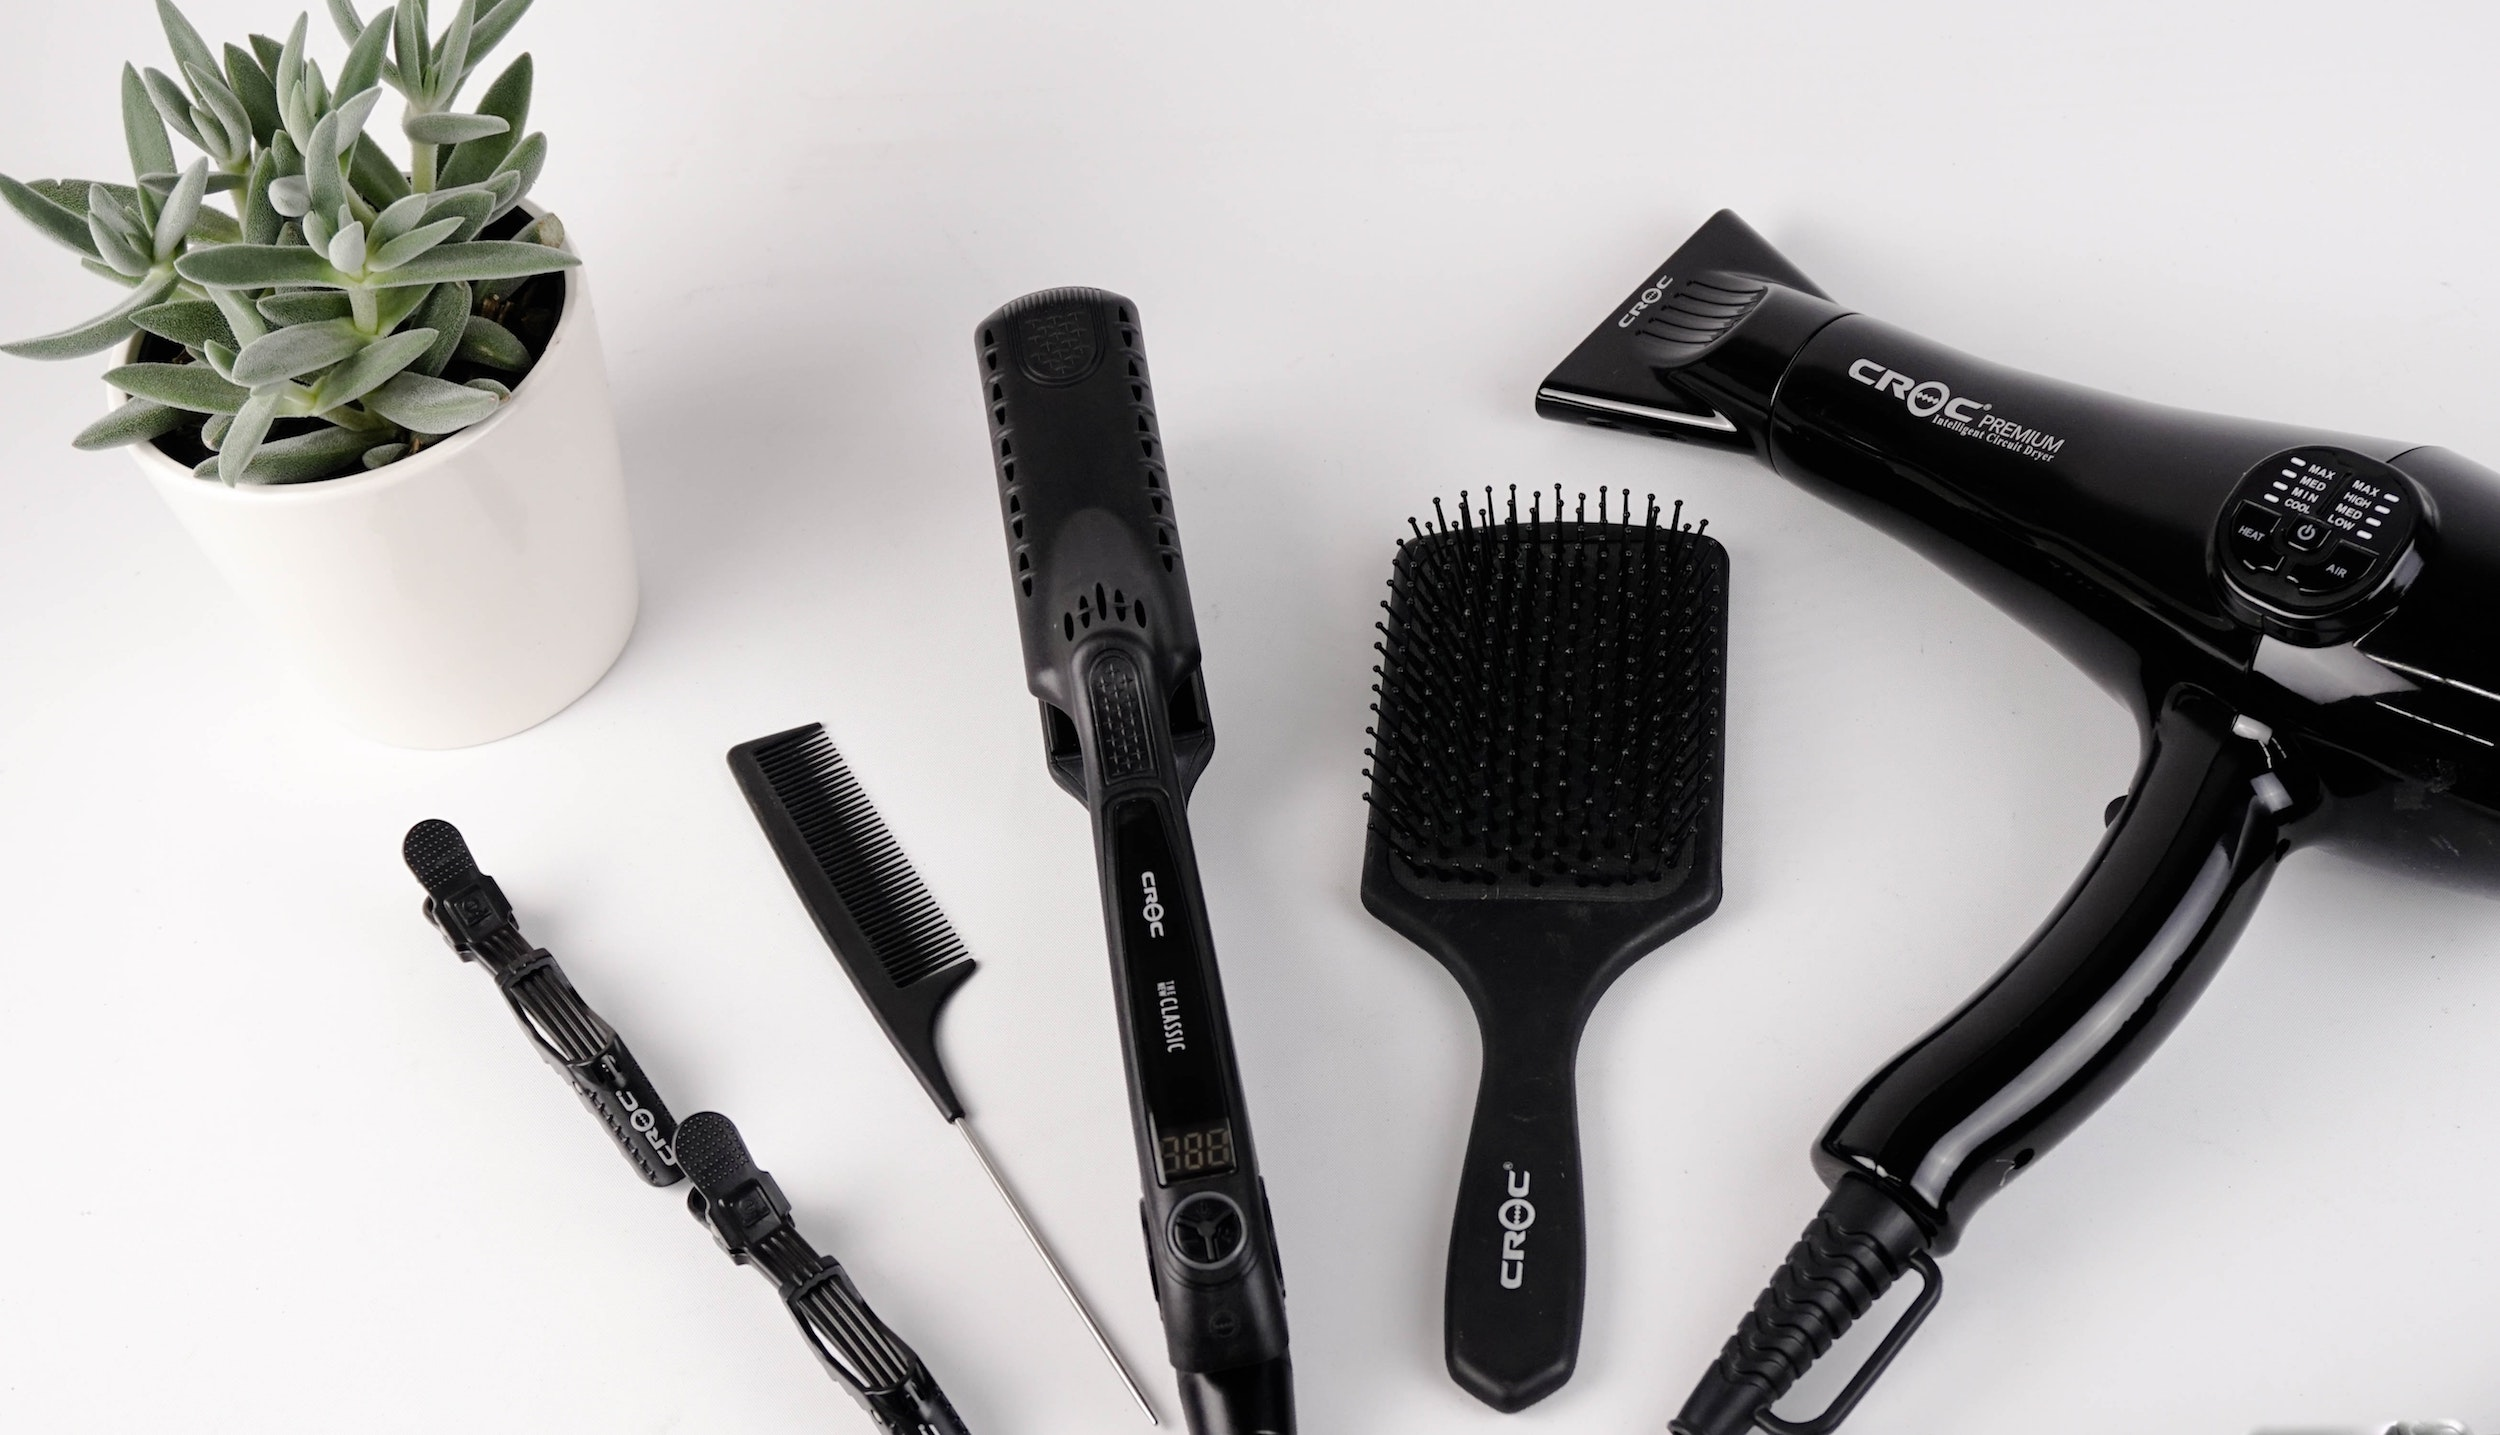 hair tools on a white background